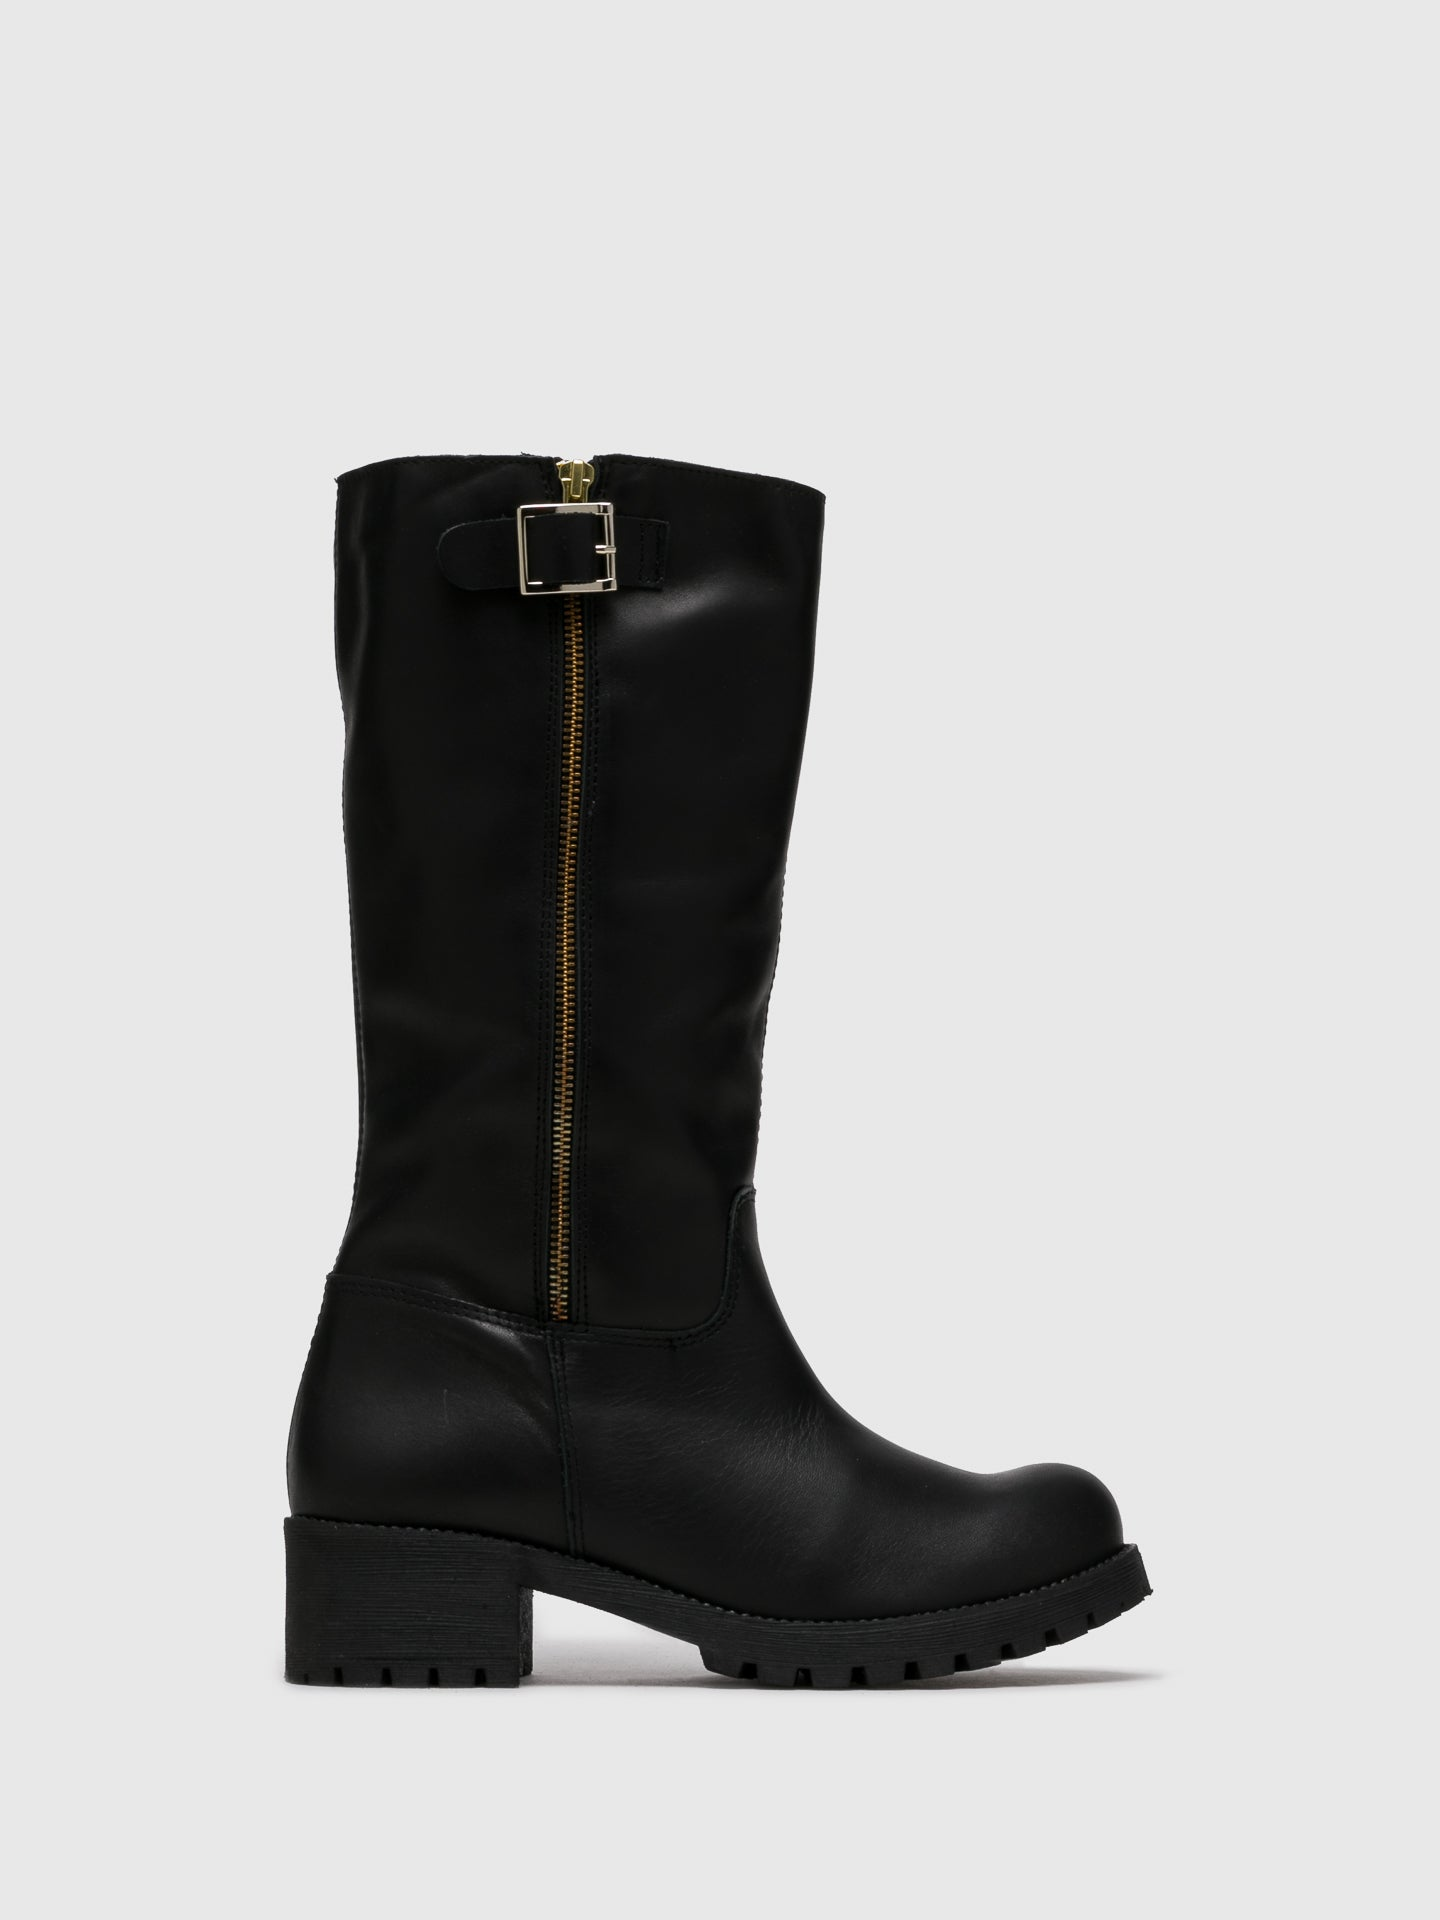 Sotoalto Black Zip Up Boots